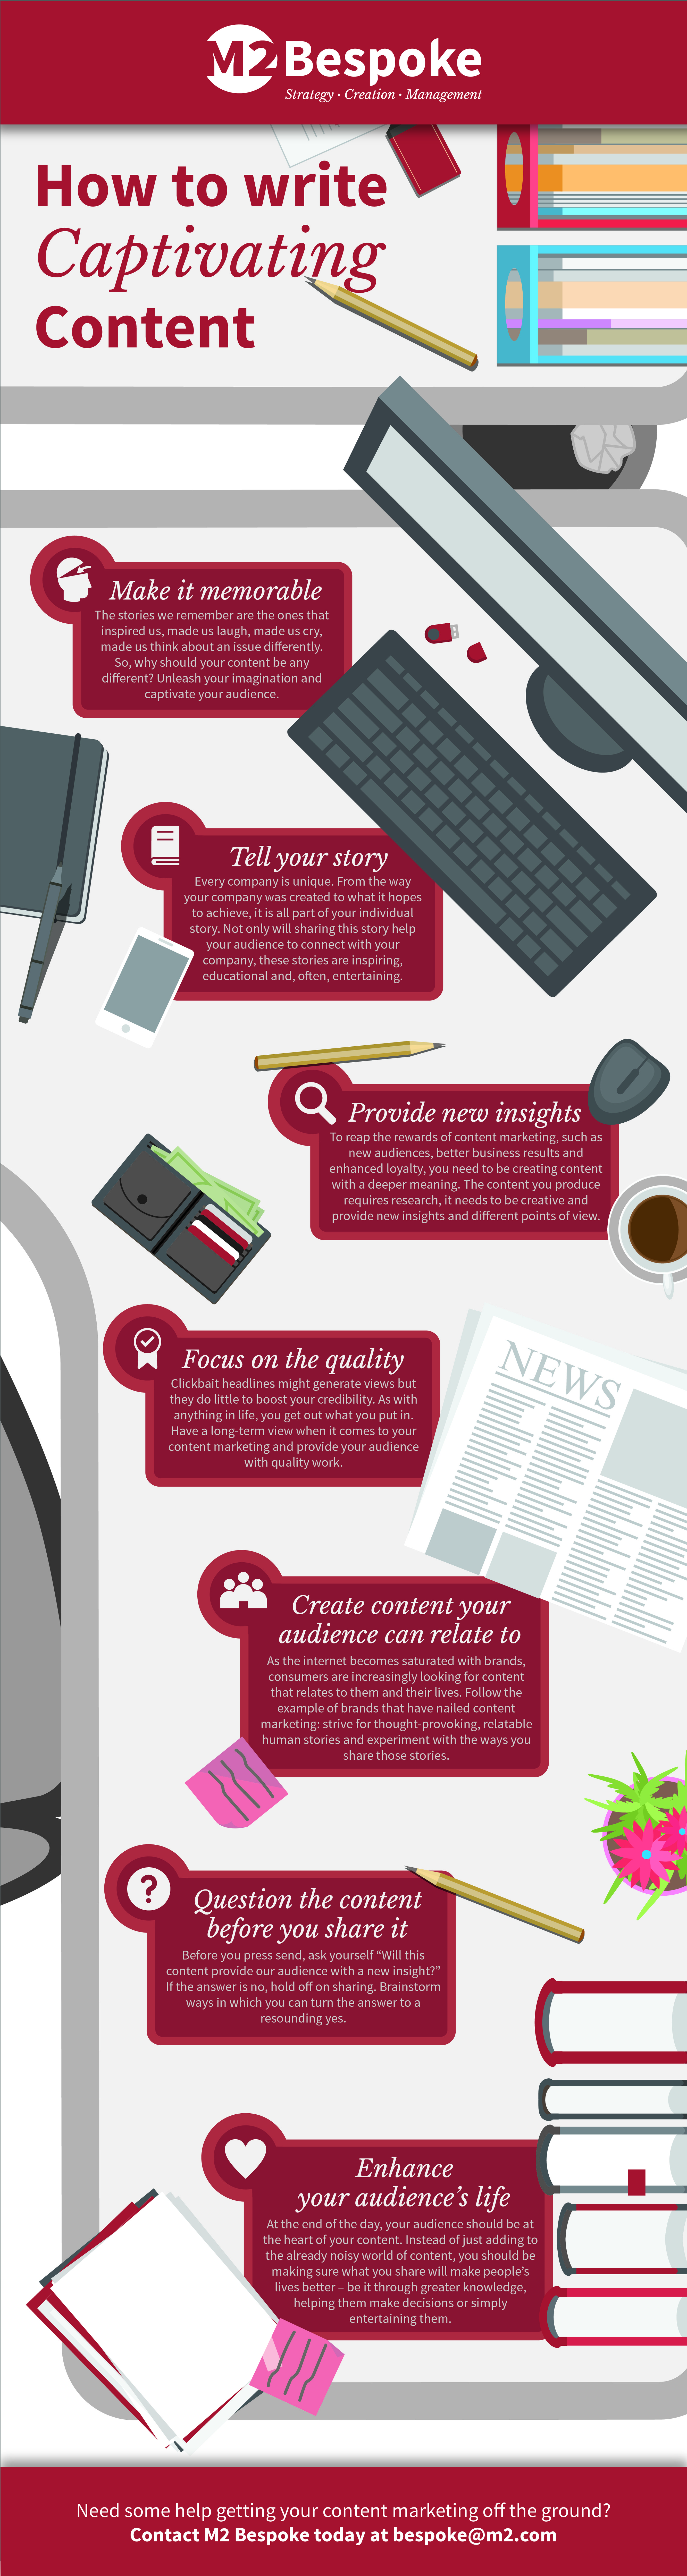 Captivating content infographic